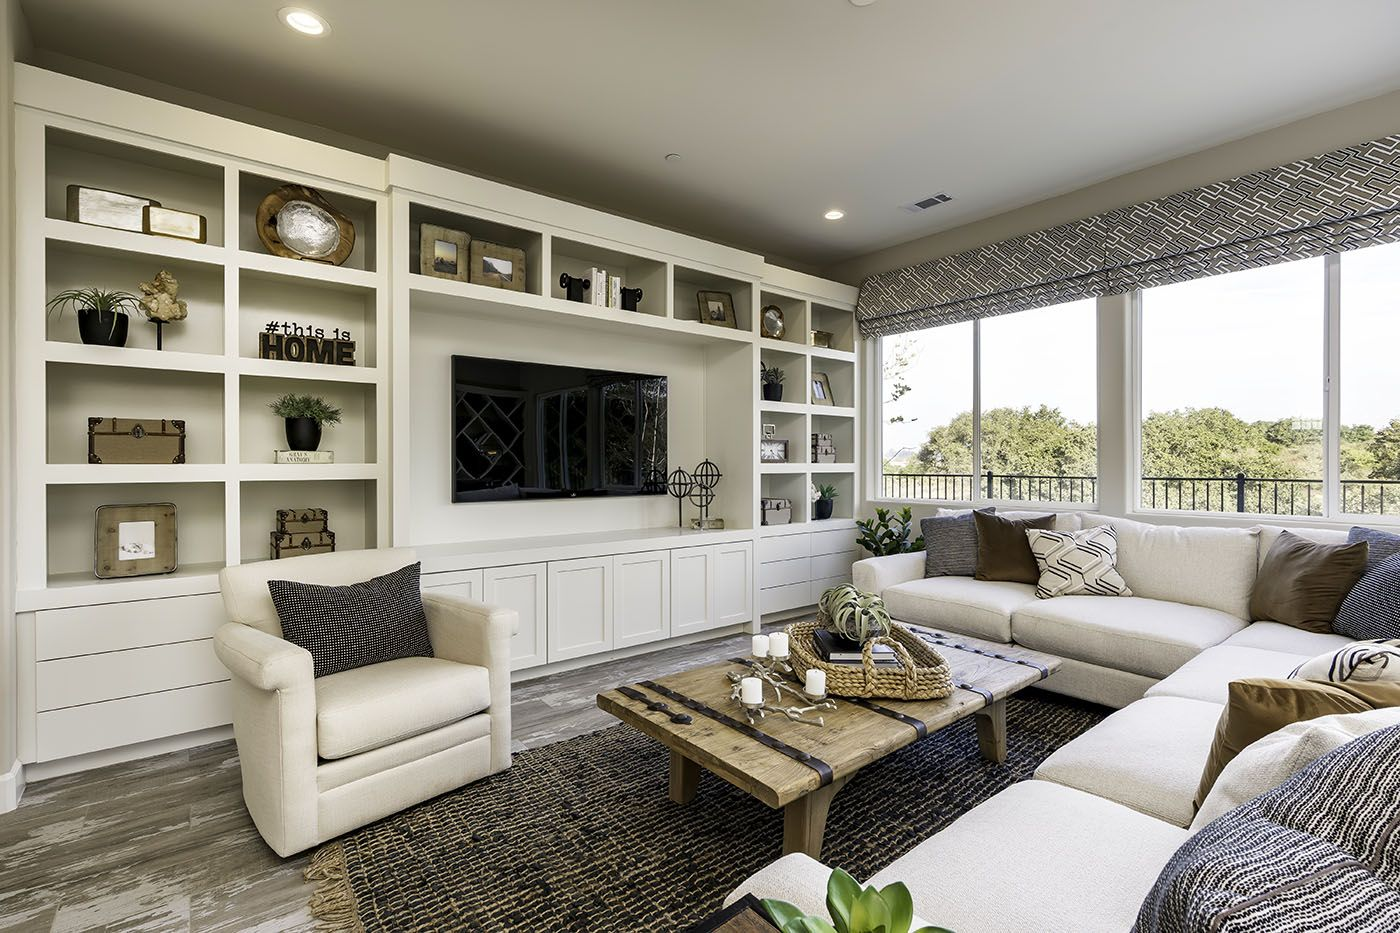 Living Area featured in the Devonshire By Coastal Community Builders in Santa Barbara, CA